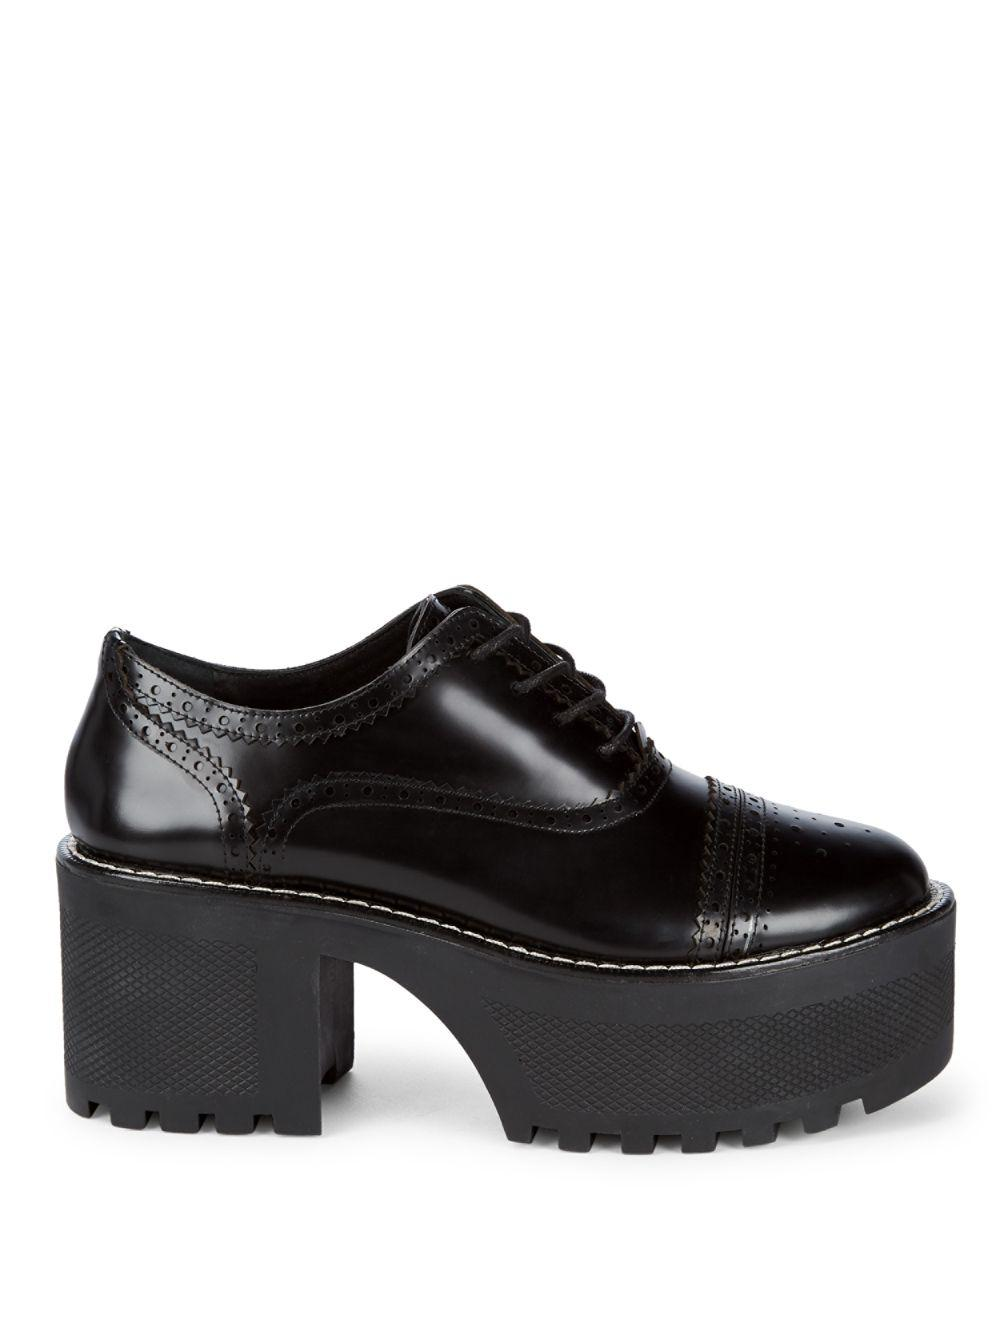 09580c24474a Lyst - Alice + Olivia Platform Oxford Shoes in Black